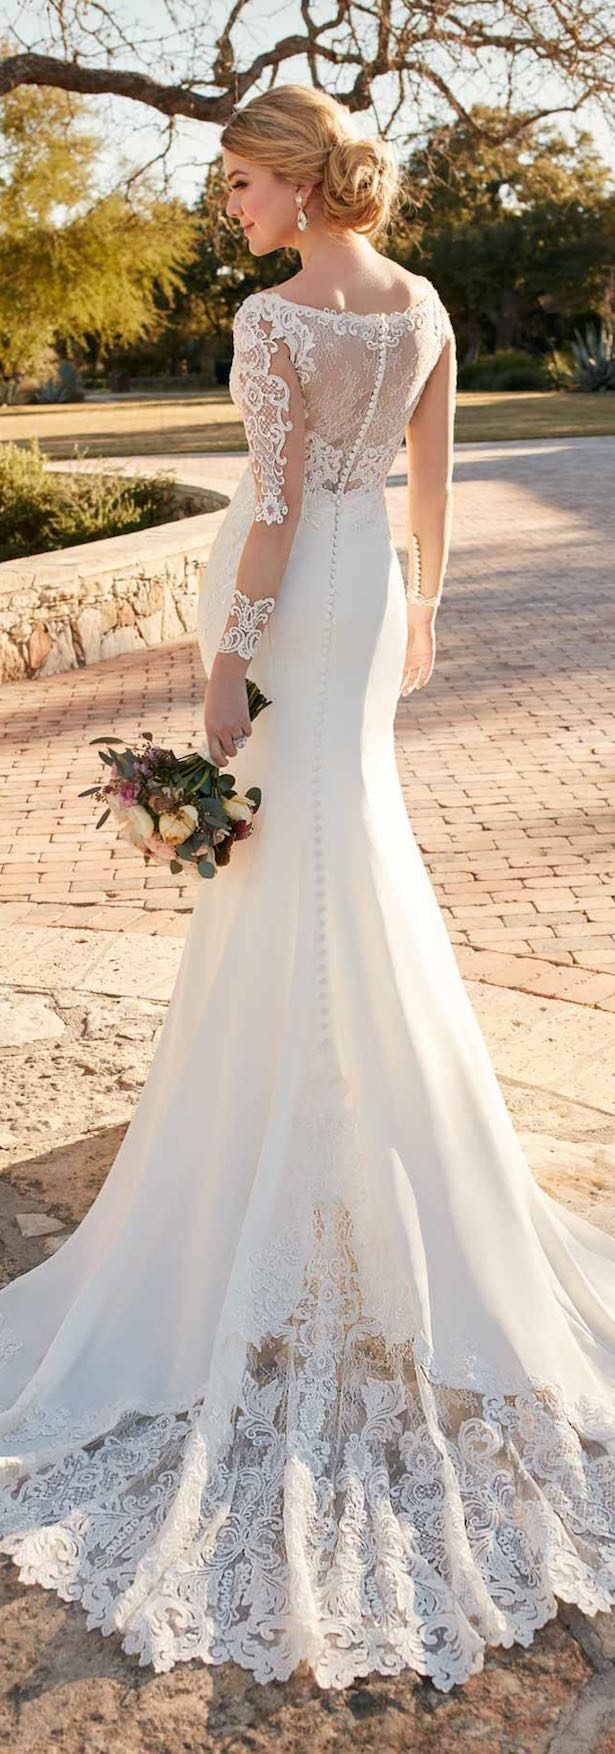 Essense of Australia brings us pretty wedding dresses designed to give the romantic bride a look that combines that WOW factor with timeless sophistication.